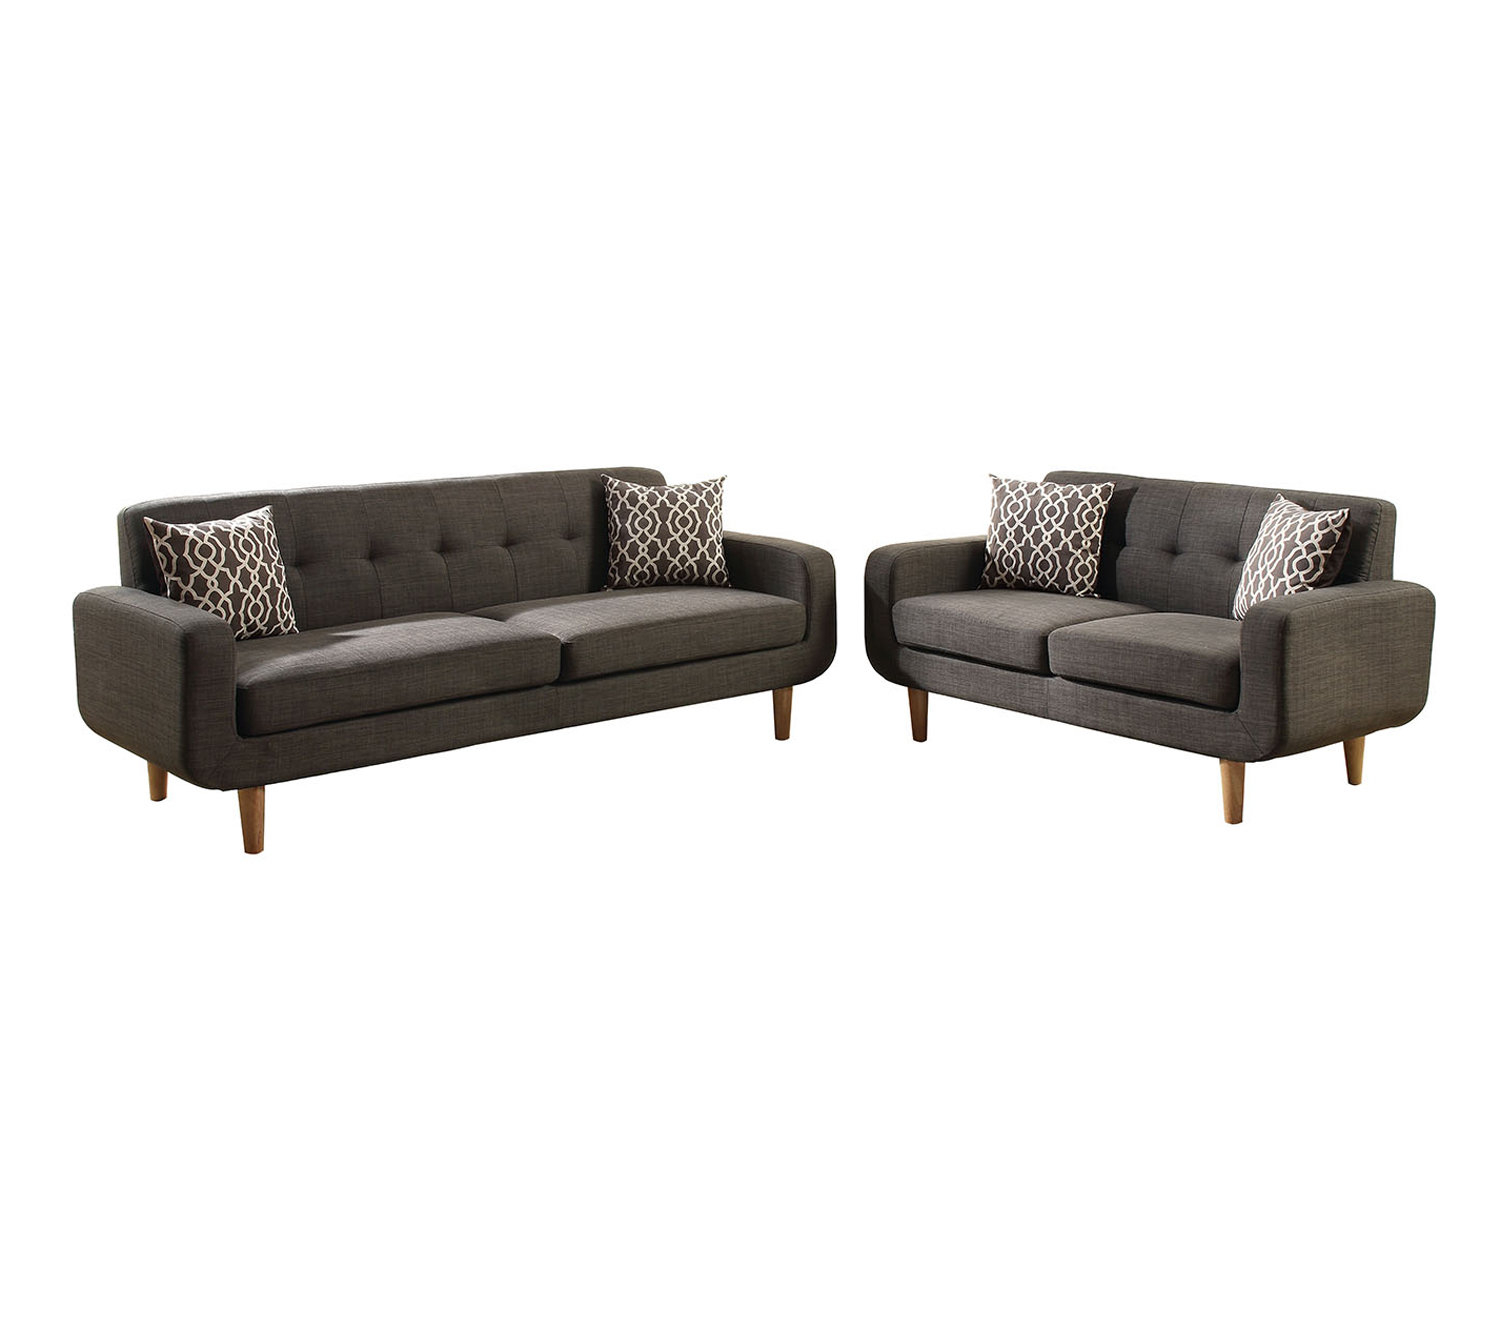 Donte Dorris Fabric 2 Piece Living Room Set Reviews Allmodern with Two Piece Living Room Set